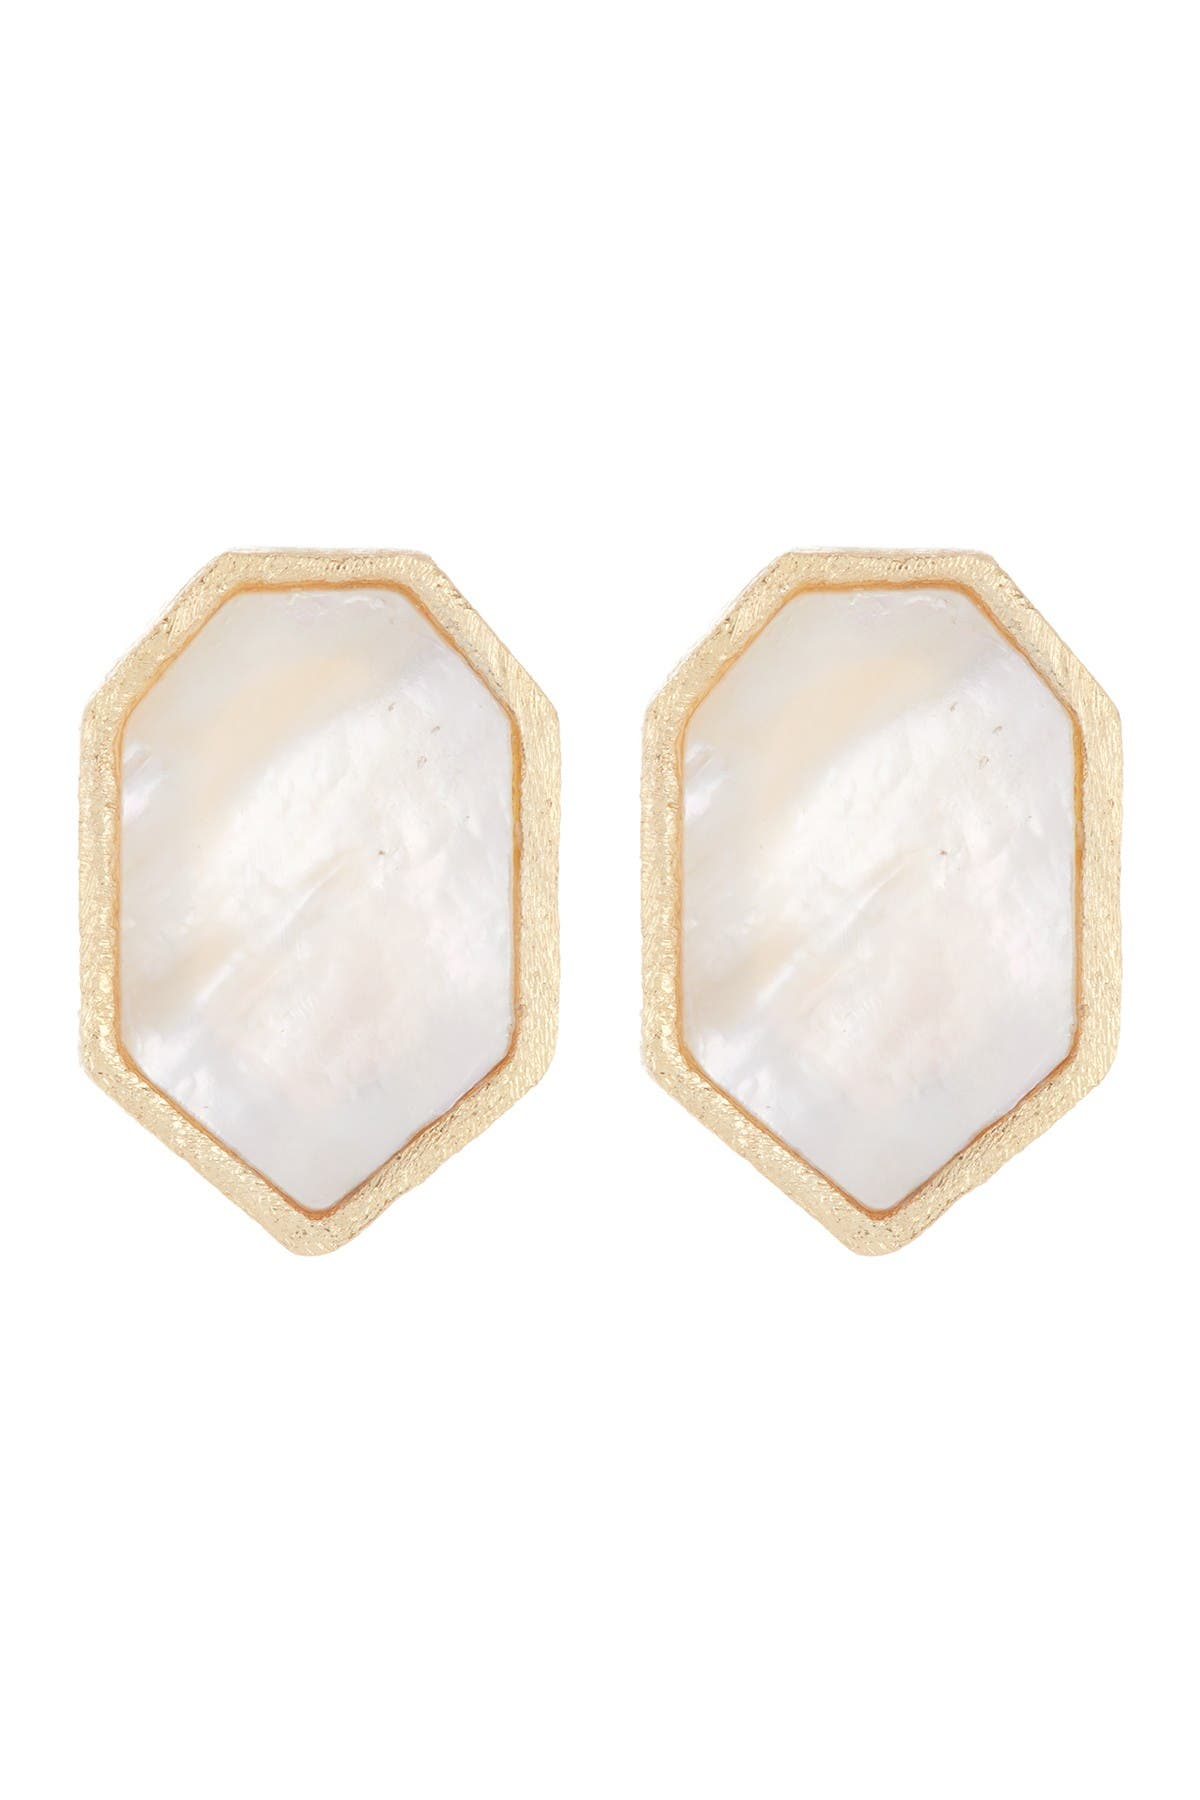 Image of Rivka Friedman 18K Gold Clad Satin Finish Mother of Pearl Geo Stud Earrings